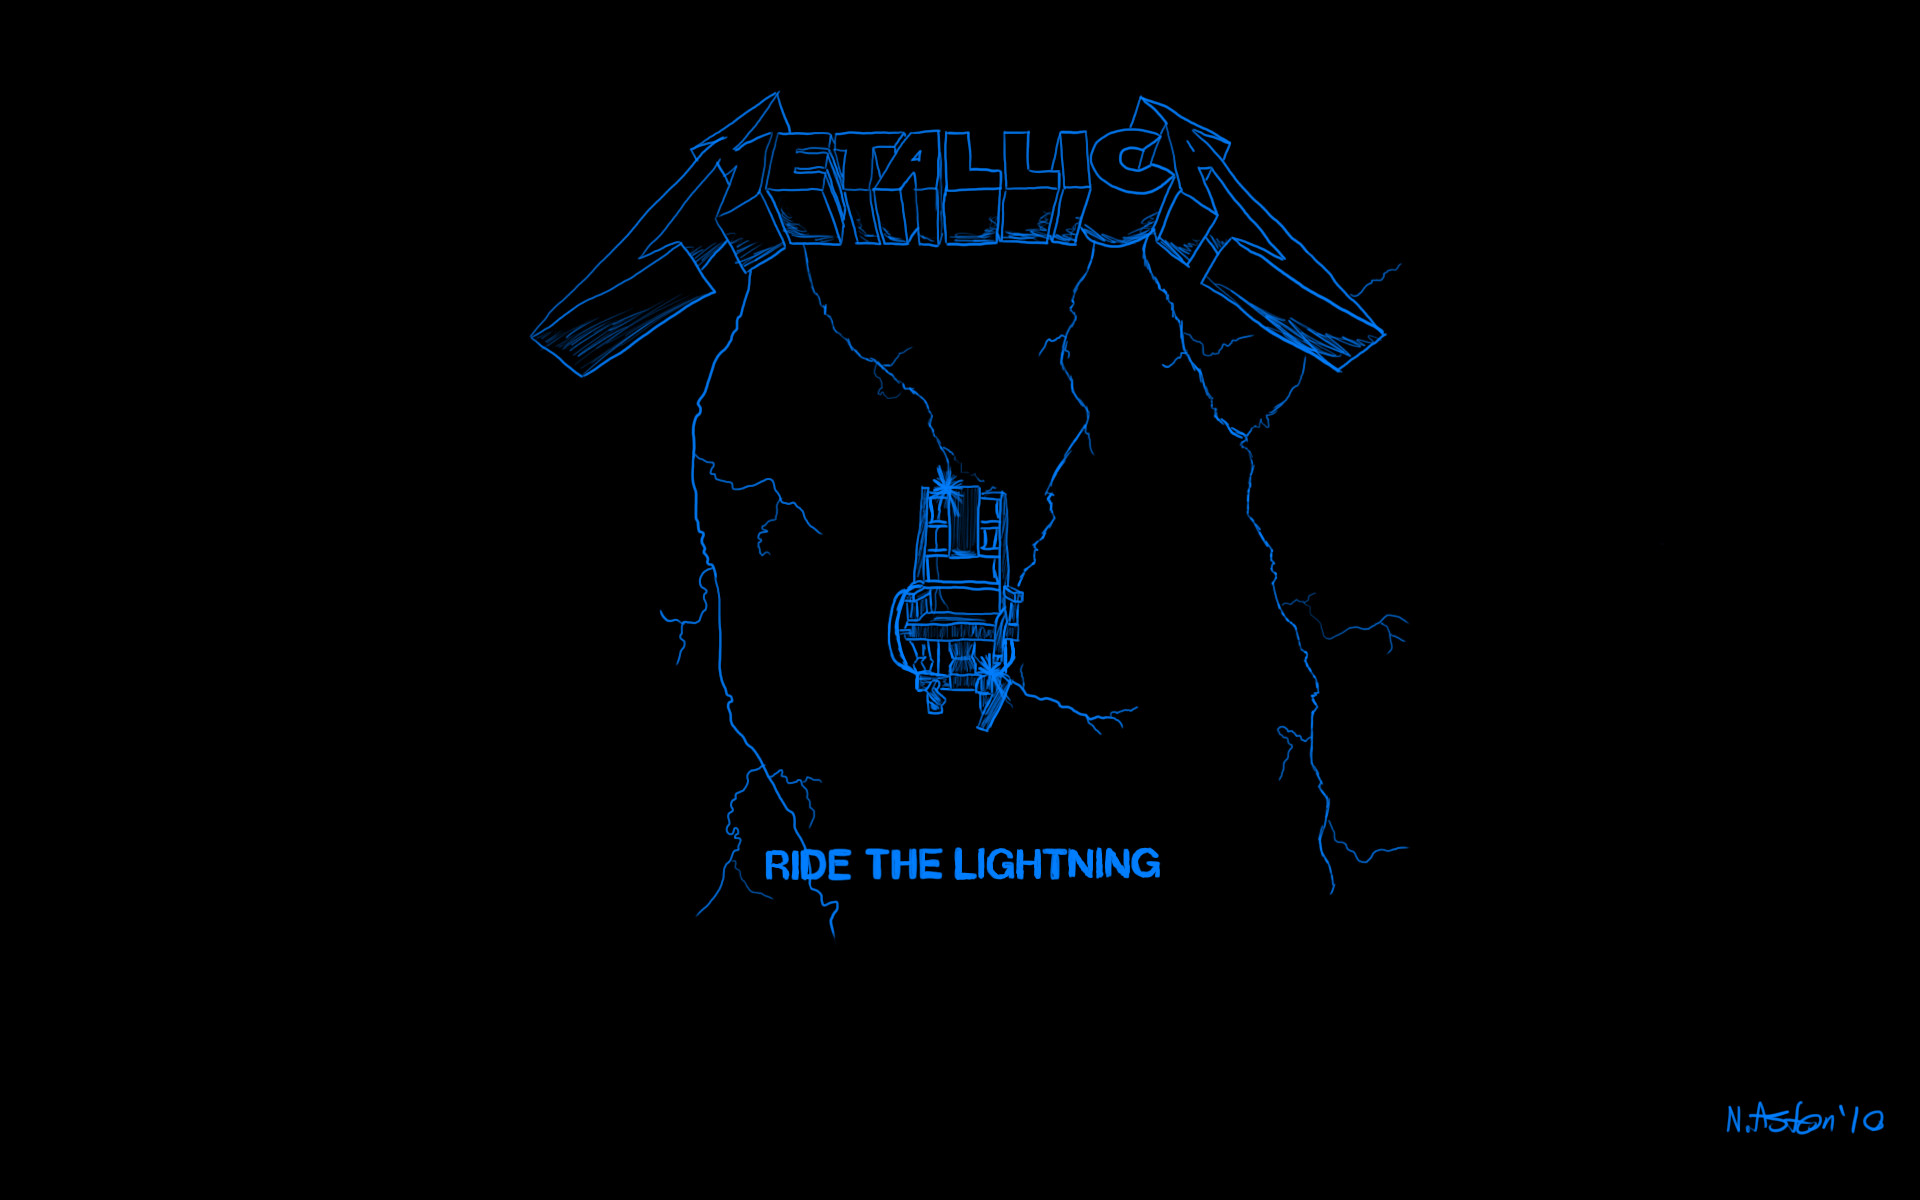 Download Metallica ride the lightning wallpapers 240 X 320